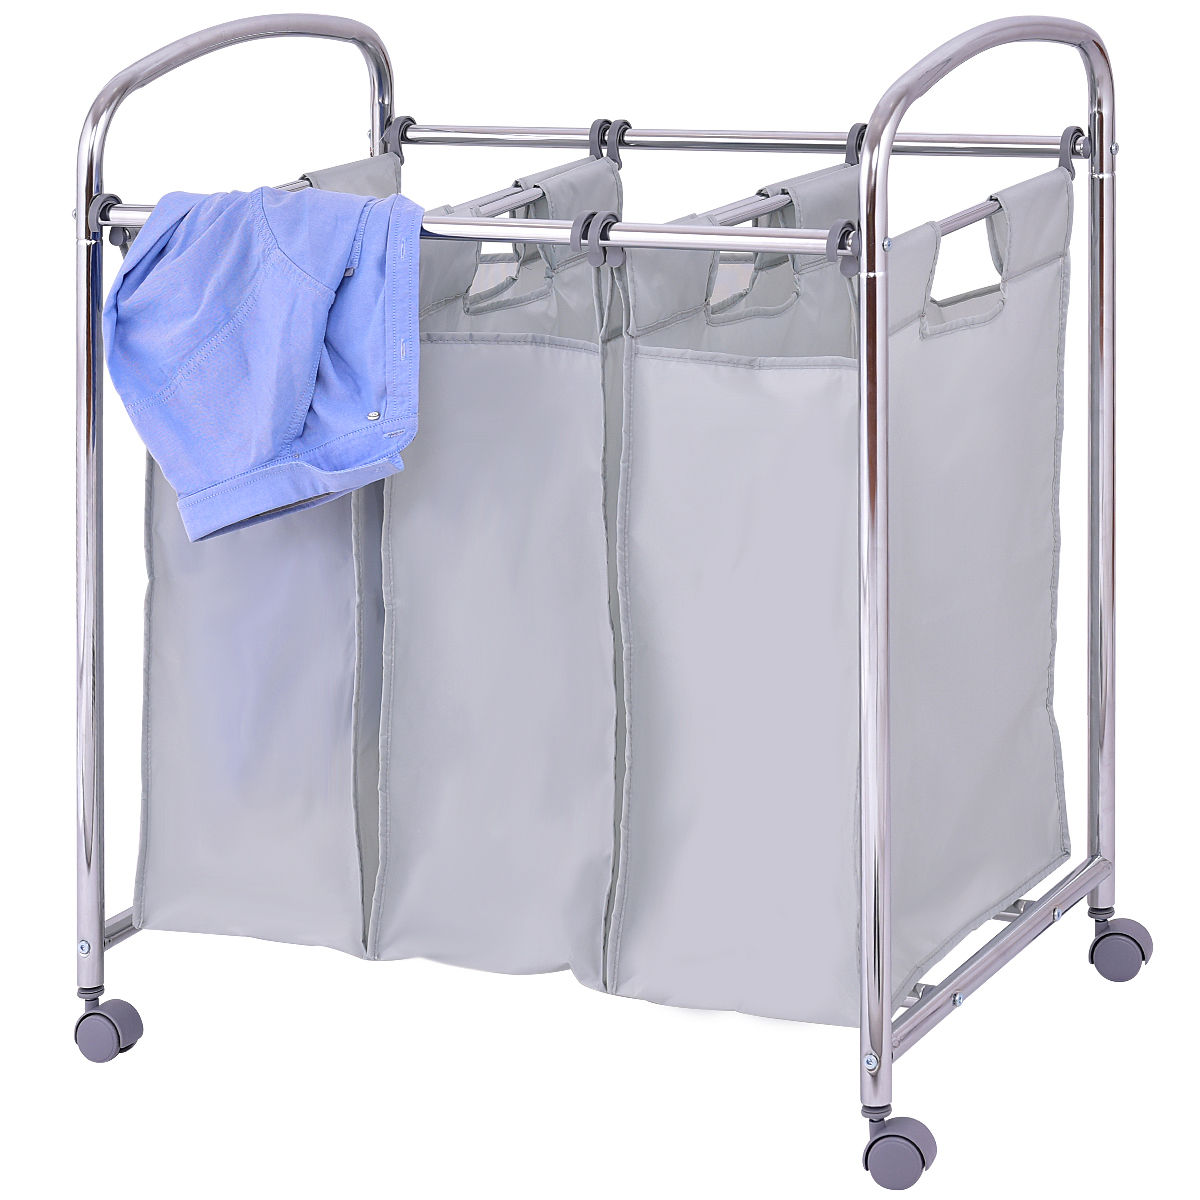 Goplus Laundry Cart Basket Triple Bag Sorter With 3 Section bags Cart Trolley Bathroom H ...